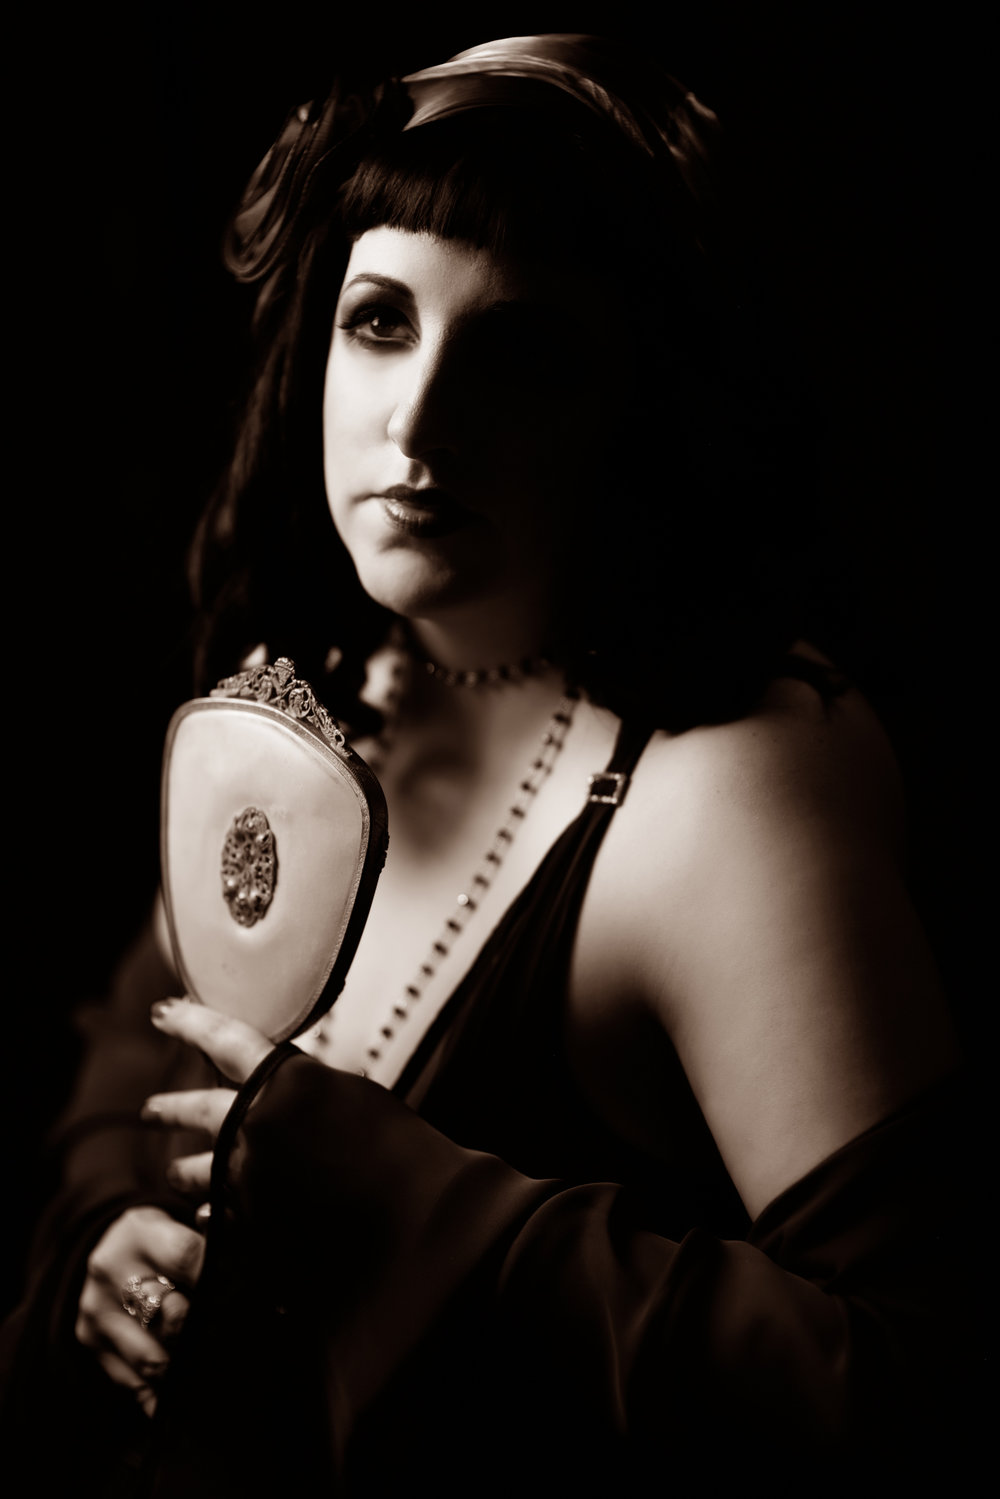 Vintage Photographer Denver 1920s Style by La Photographie 01.jpg